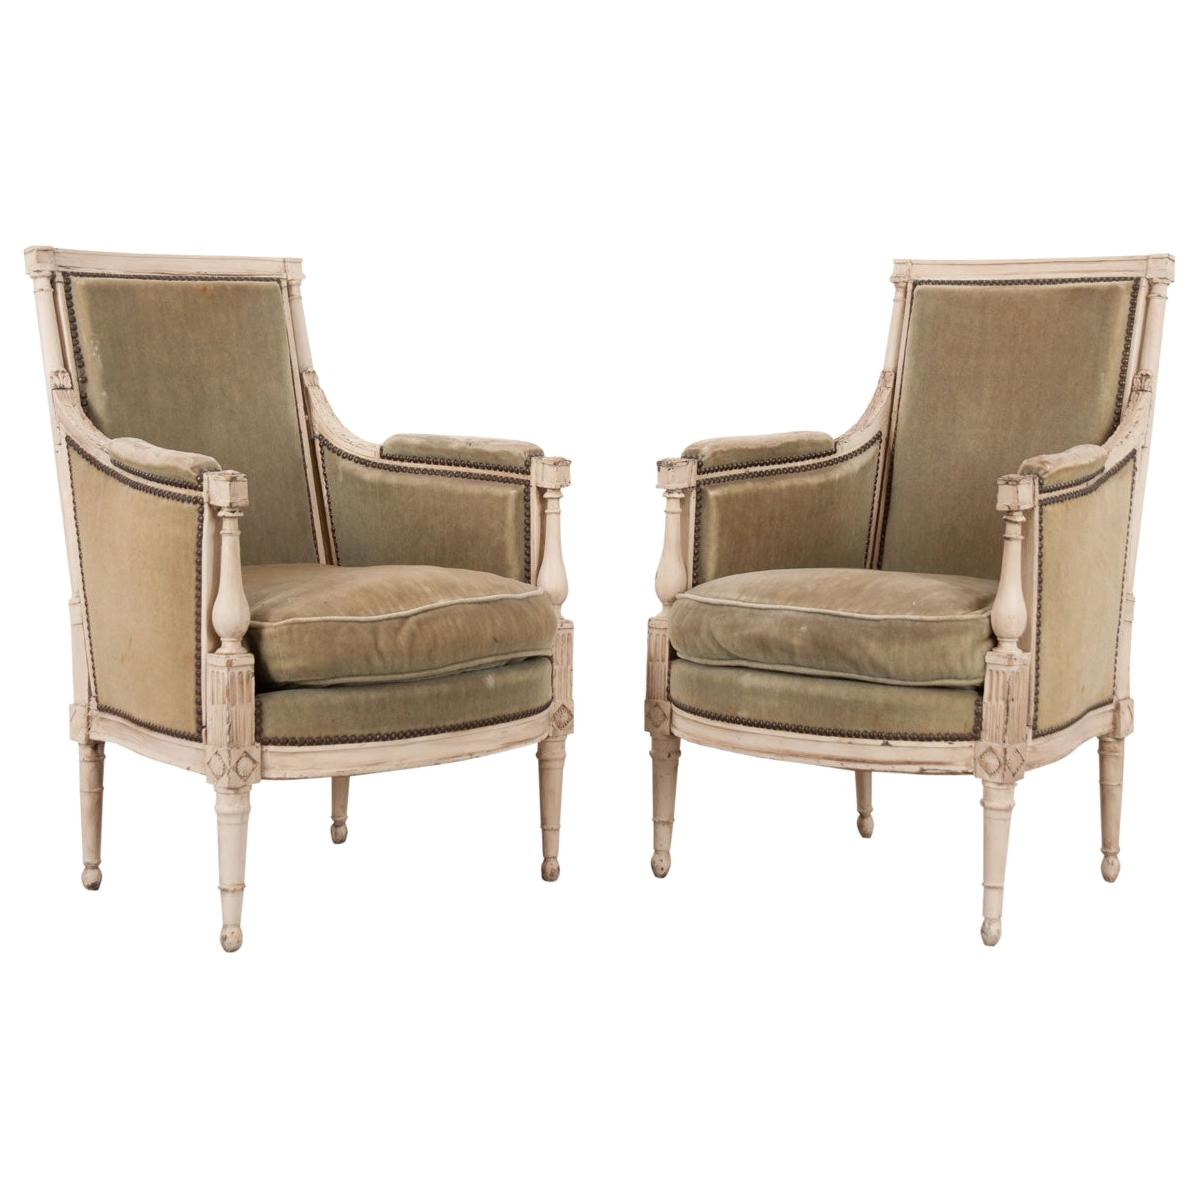 Pair of French 19th Century Louis XVI-Style Bergeres